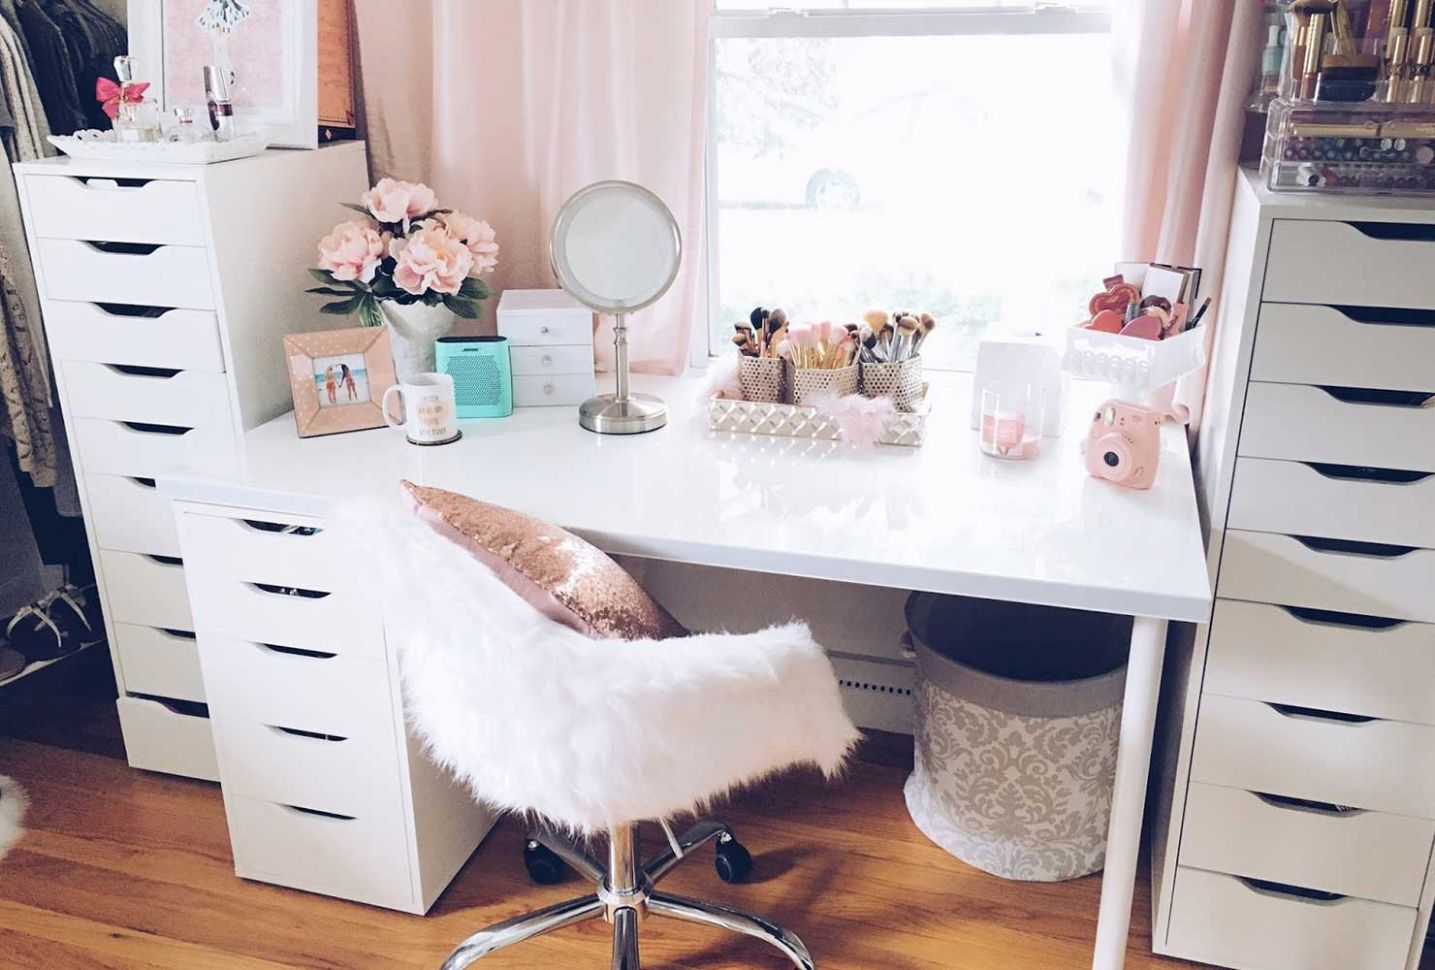 10 Makeup Room Ideas To Brighten Your Morning Routine | Shutterfly - makeup room setup ideas